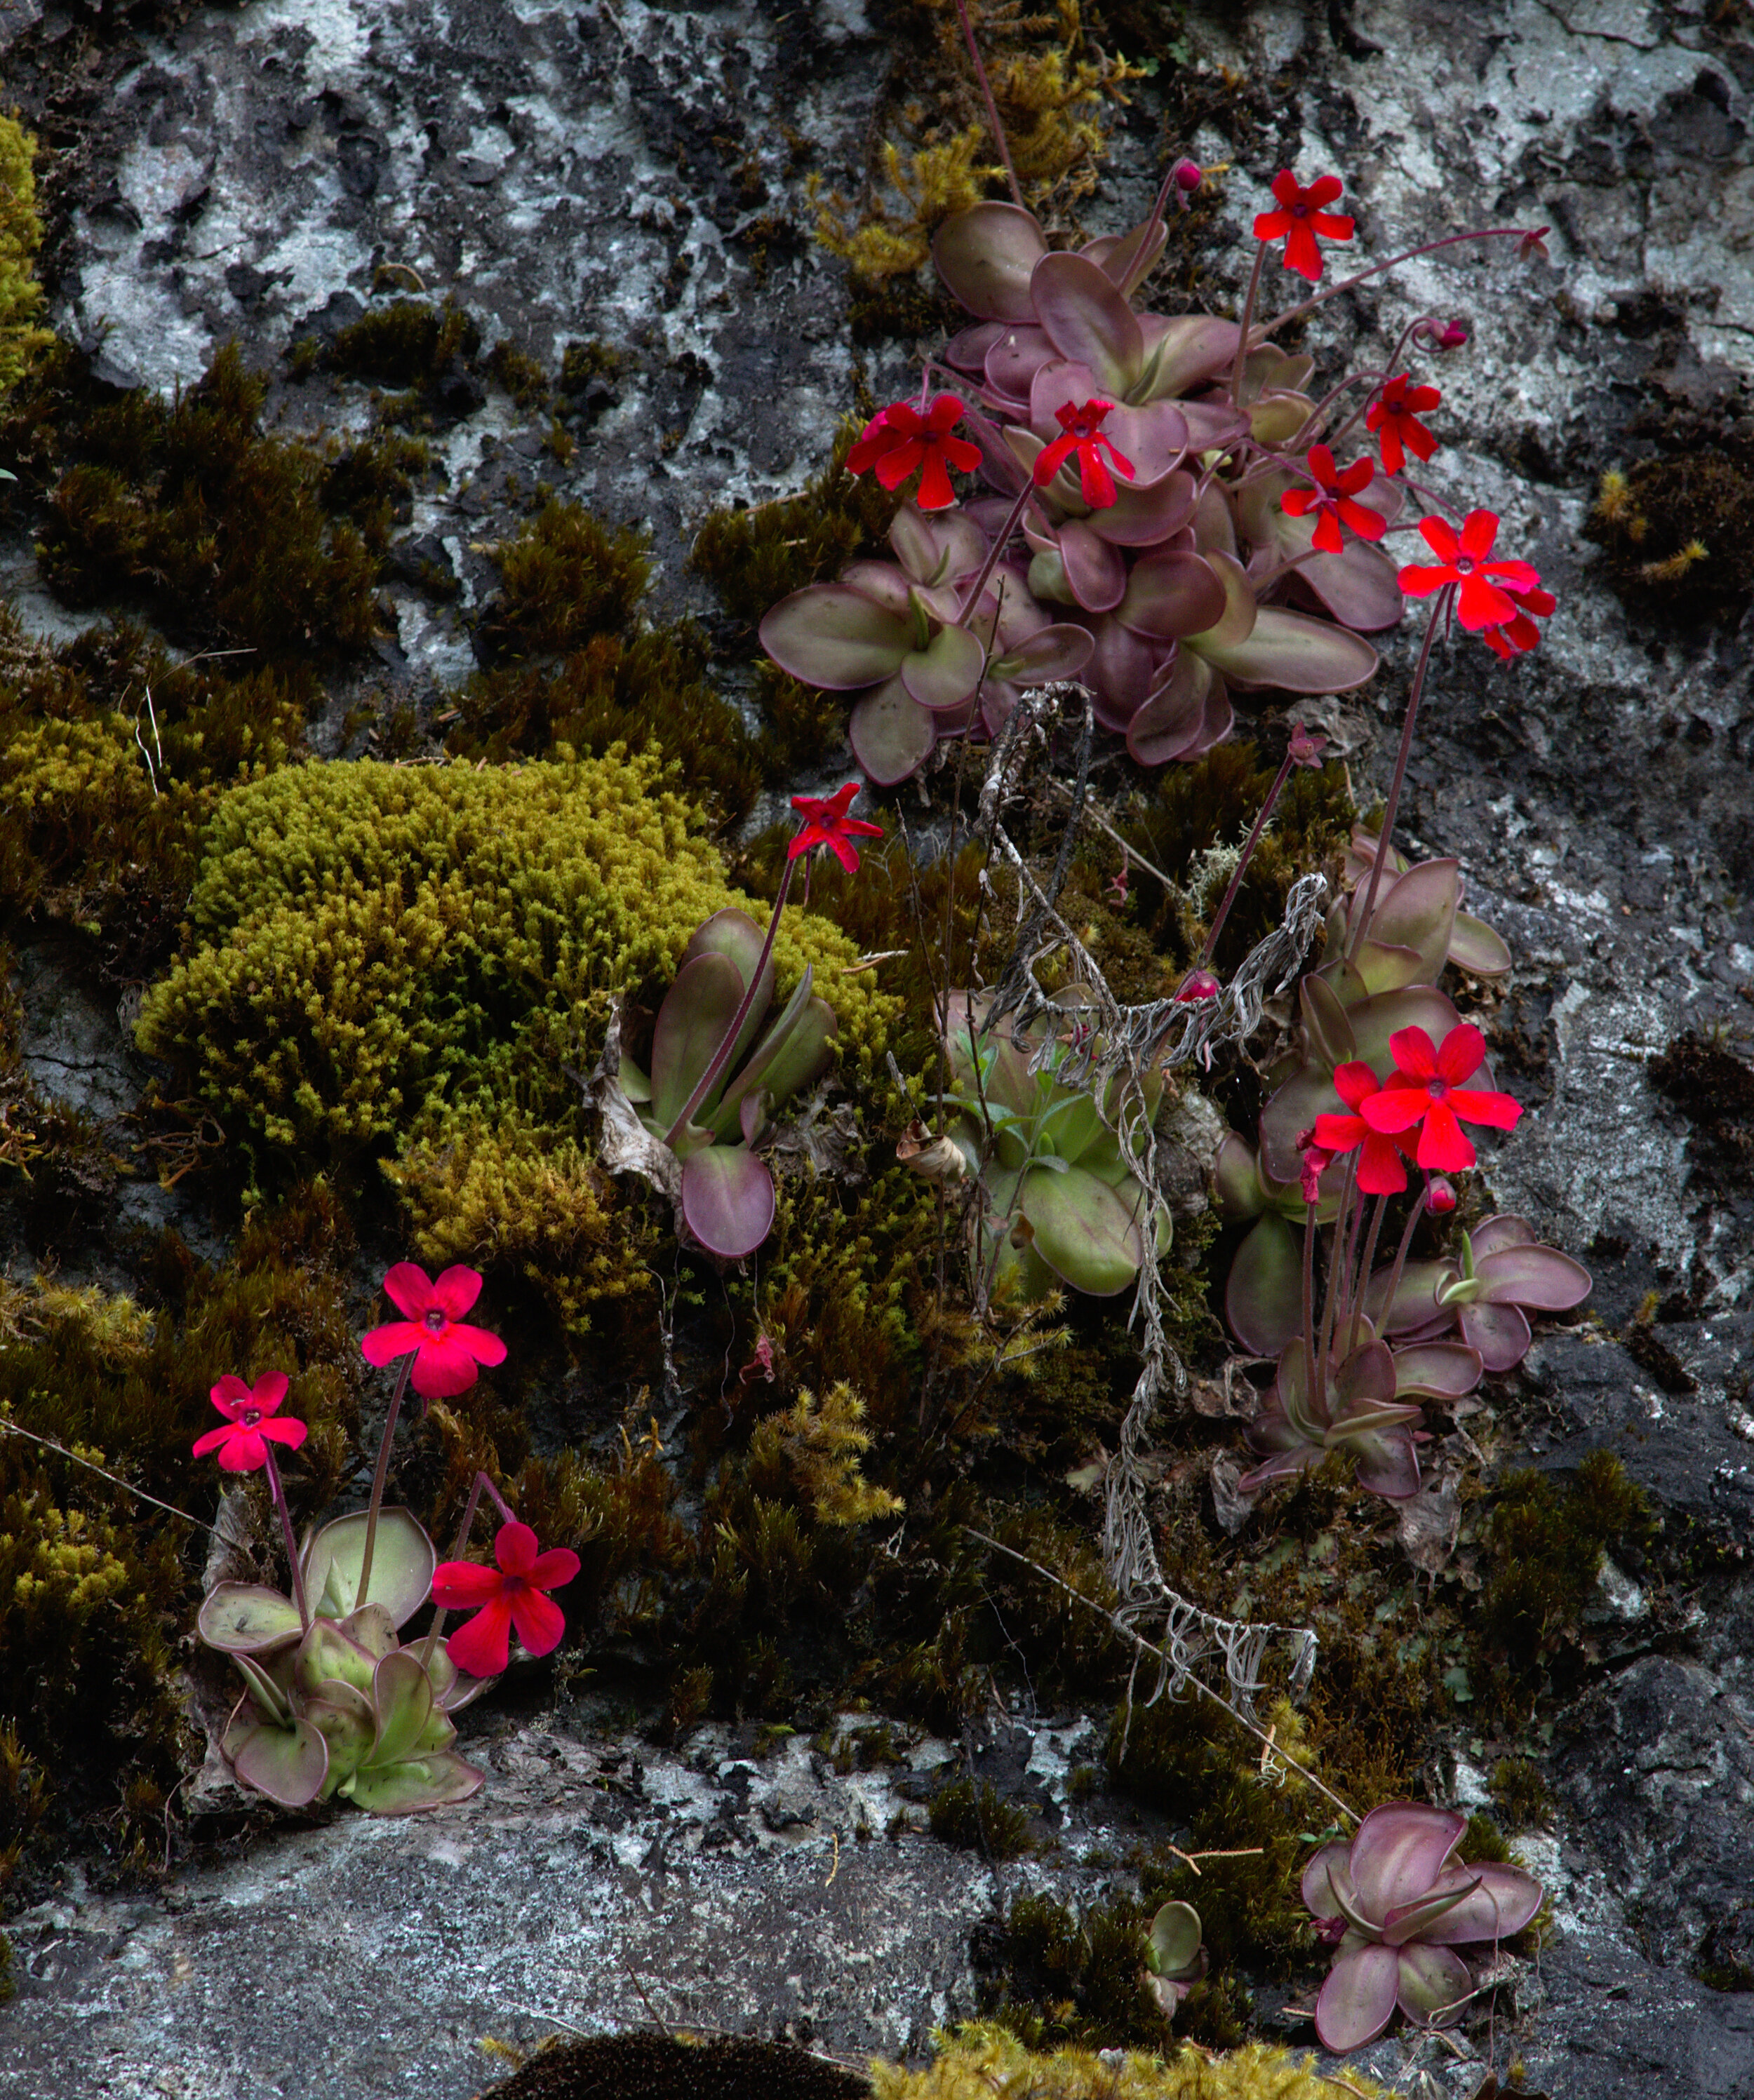 Detail of a well-flowered  Pinguicula laueana  colony in May 2011. Image: F. Muller.